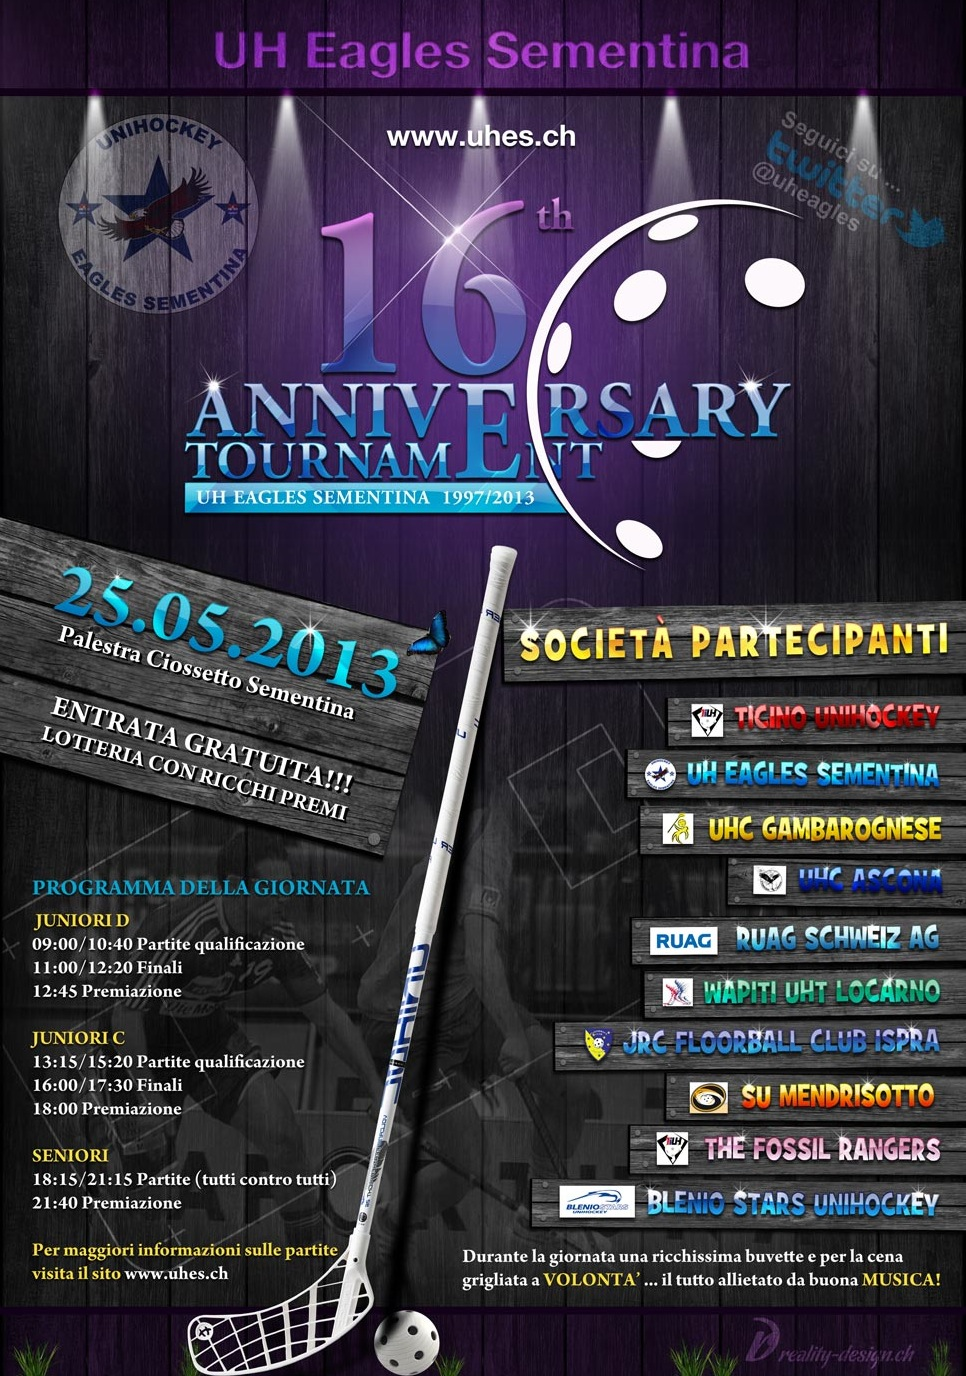 Flyer 16 Anniversary Tournament 2013